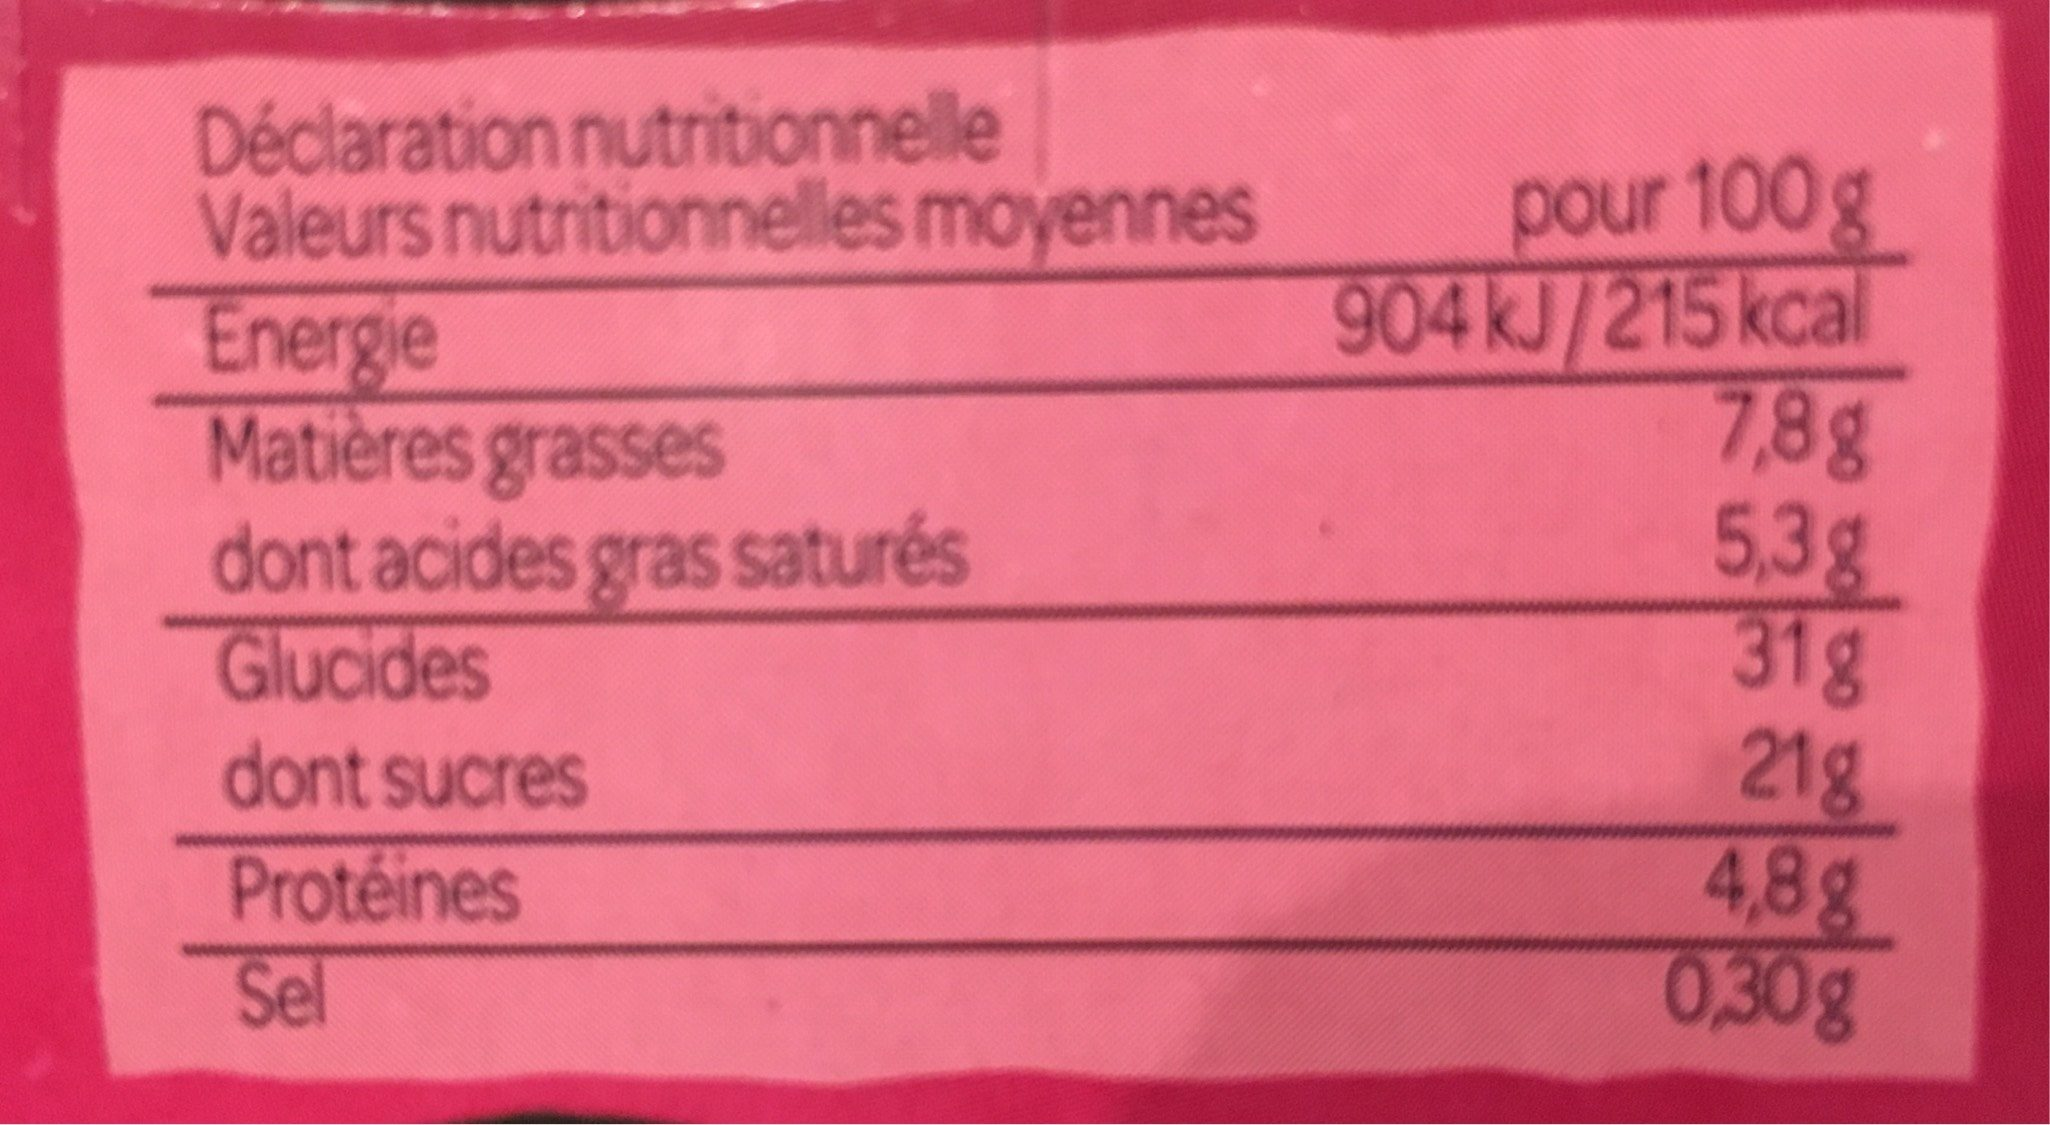 Cheesecakes - Nutrition facts